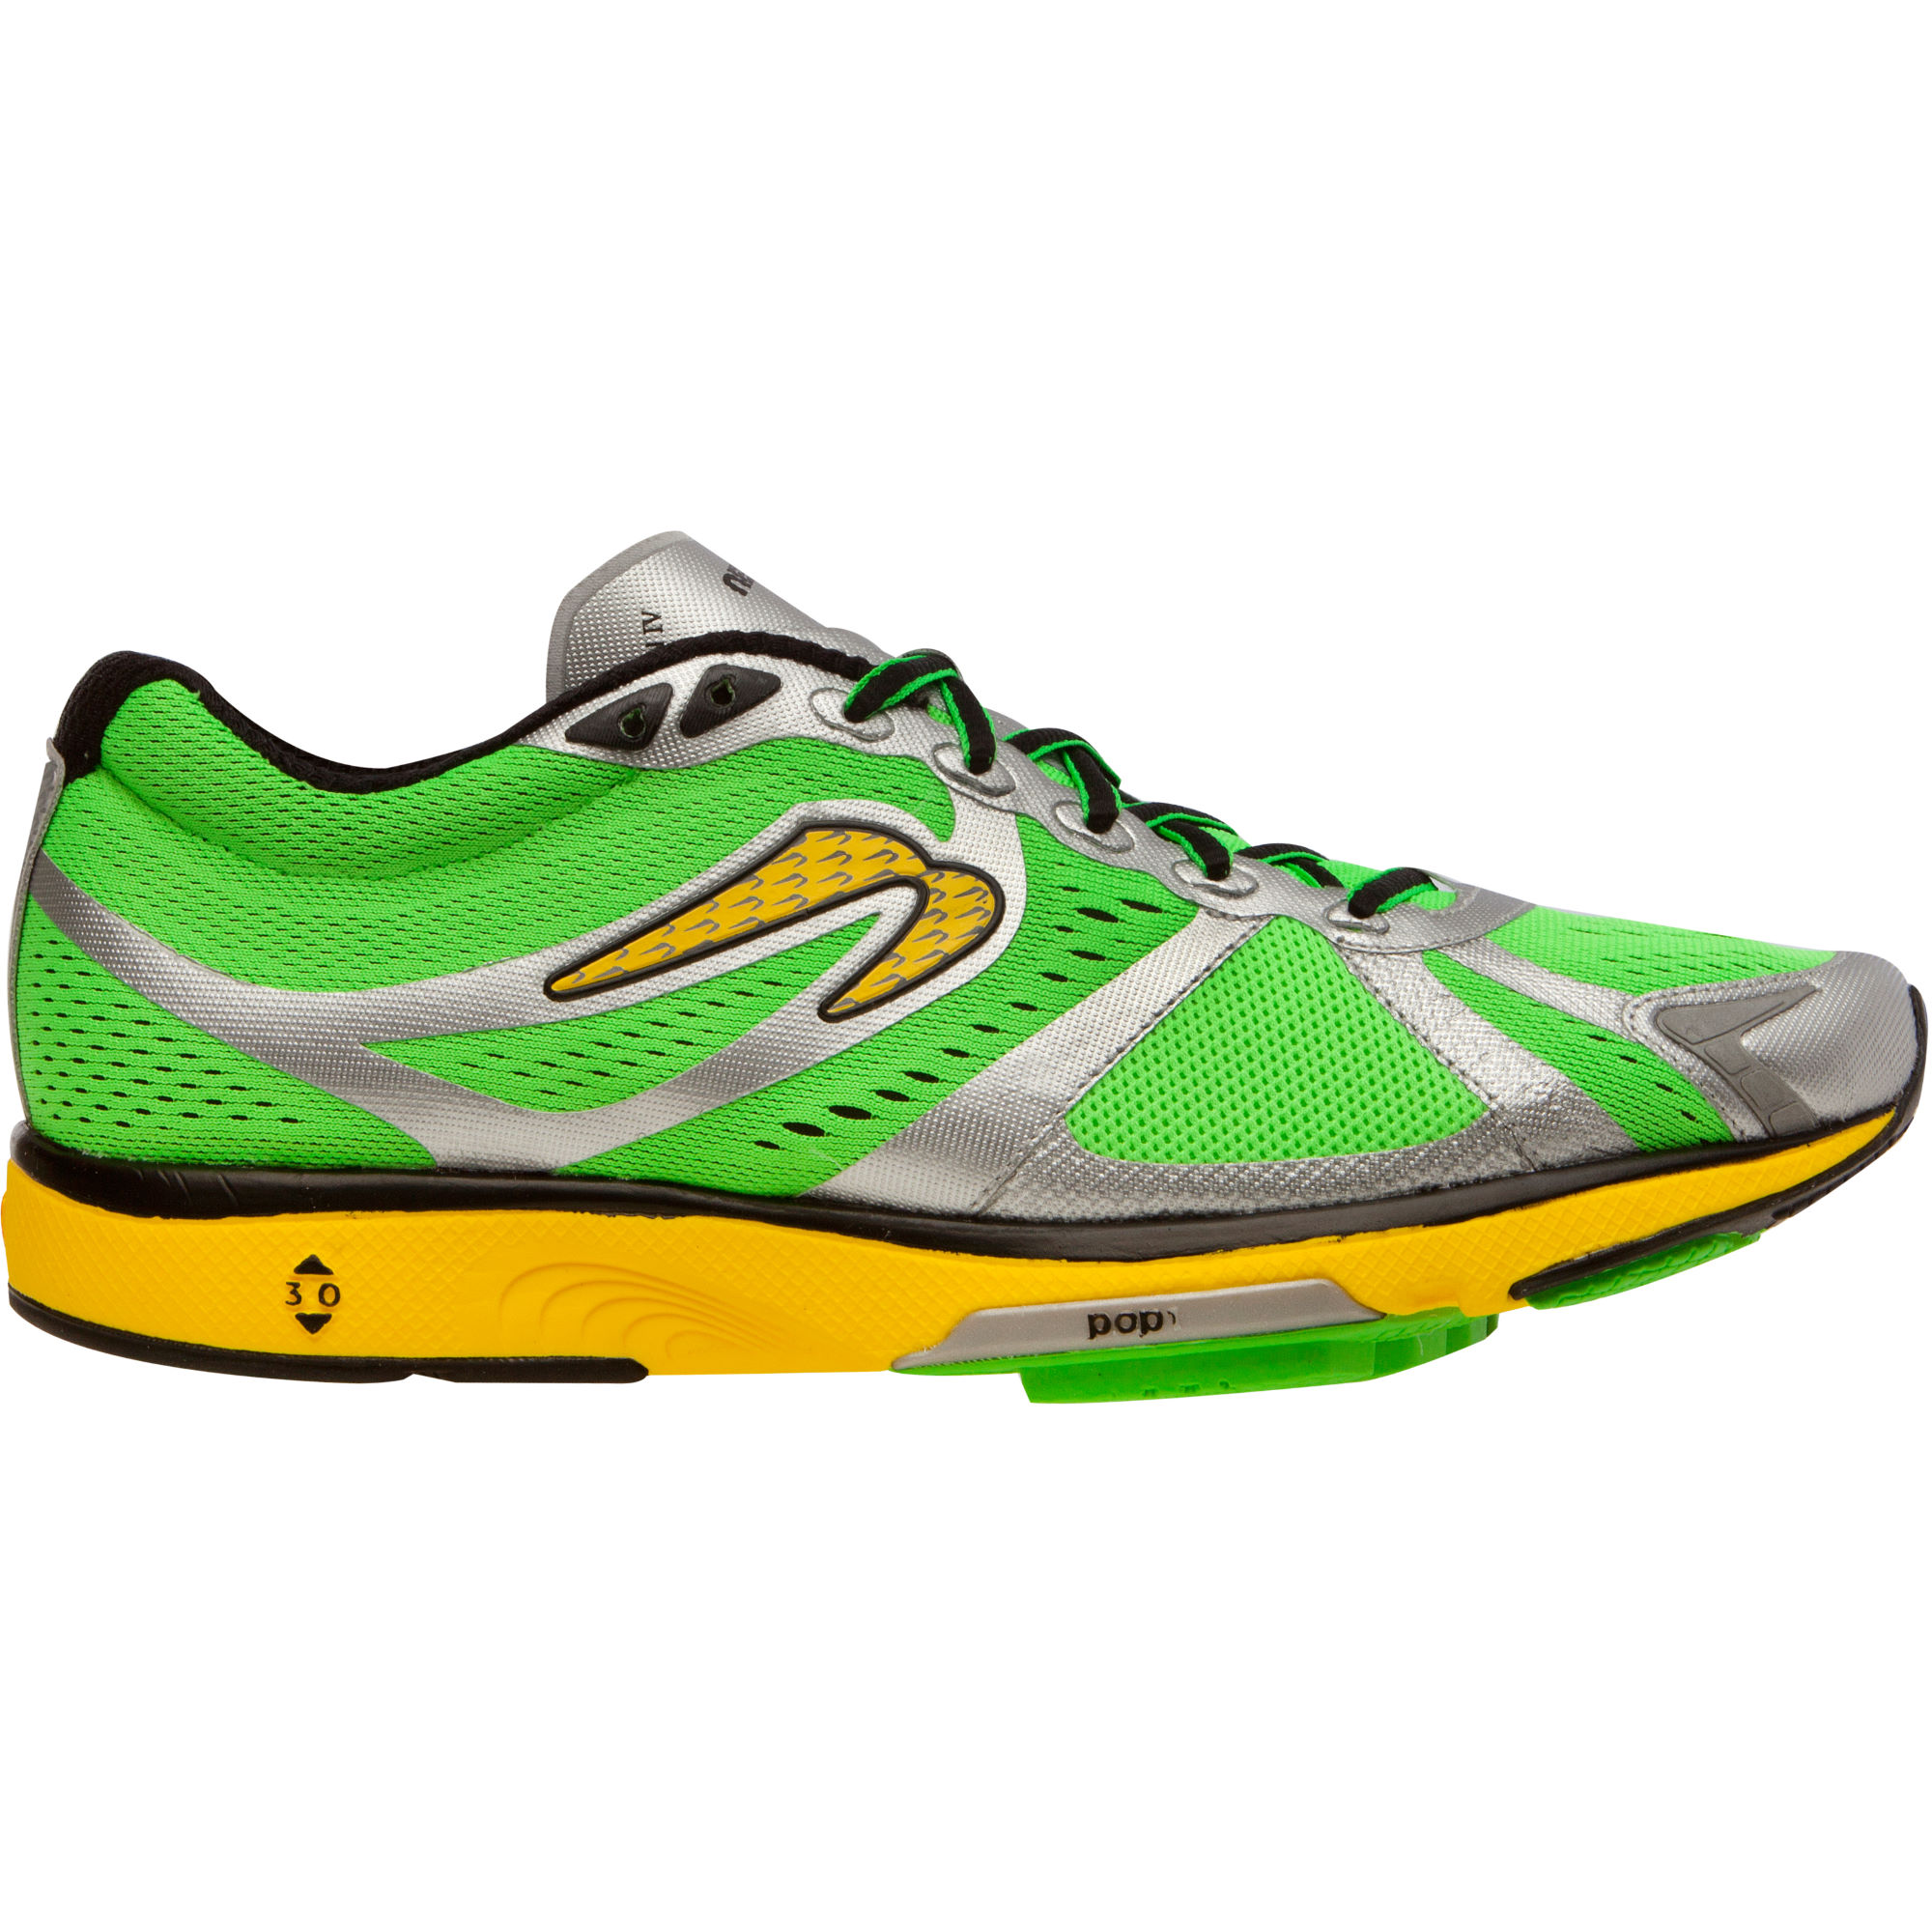 Newton Running Shoes Stability Trainer